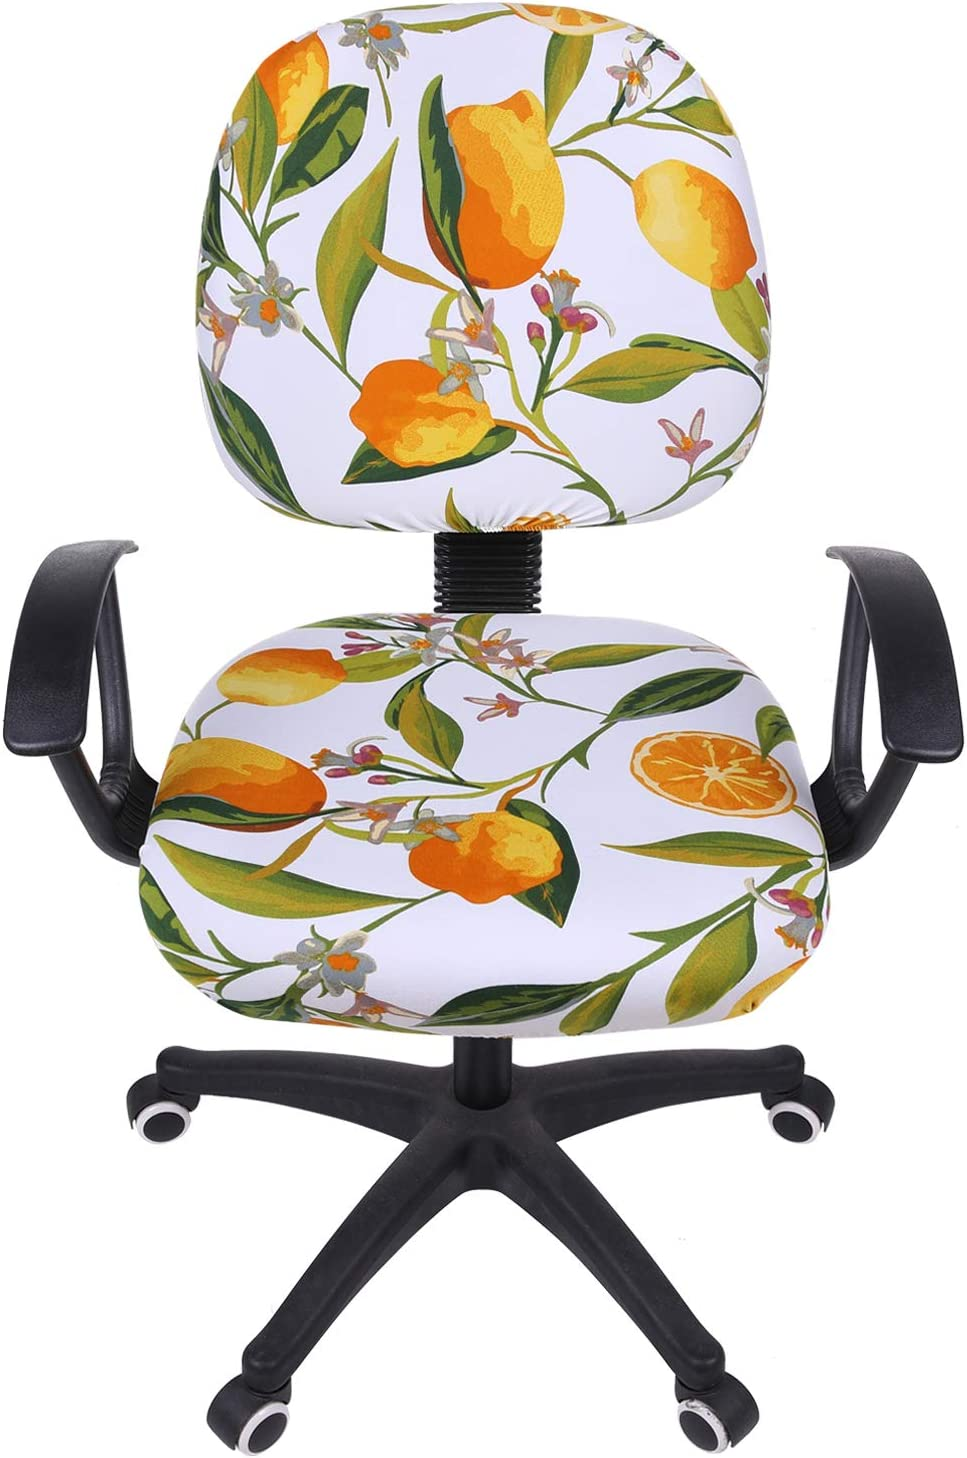 smiry Stretch Print Computer Office Chair Cover, Removable Washable Universal Desk Rotating Chair Slipcover, Yellow Lemon